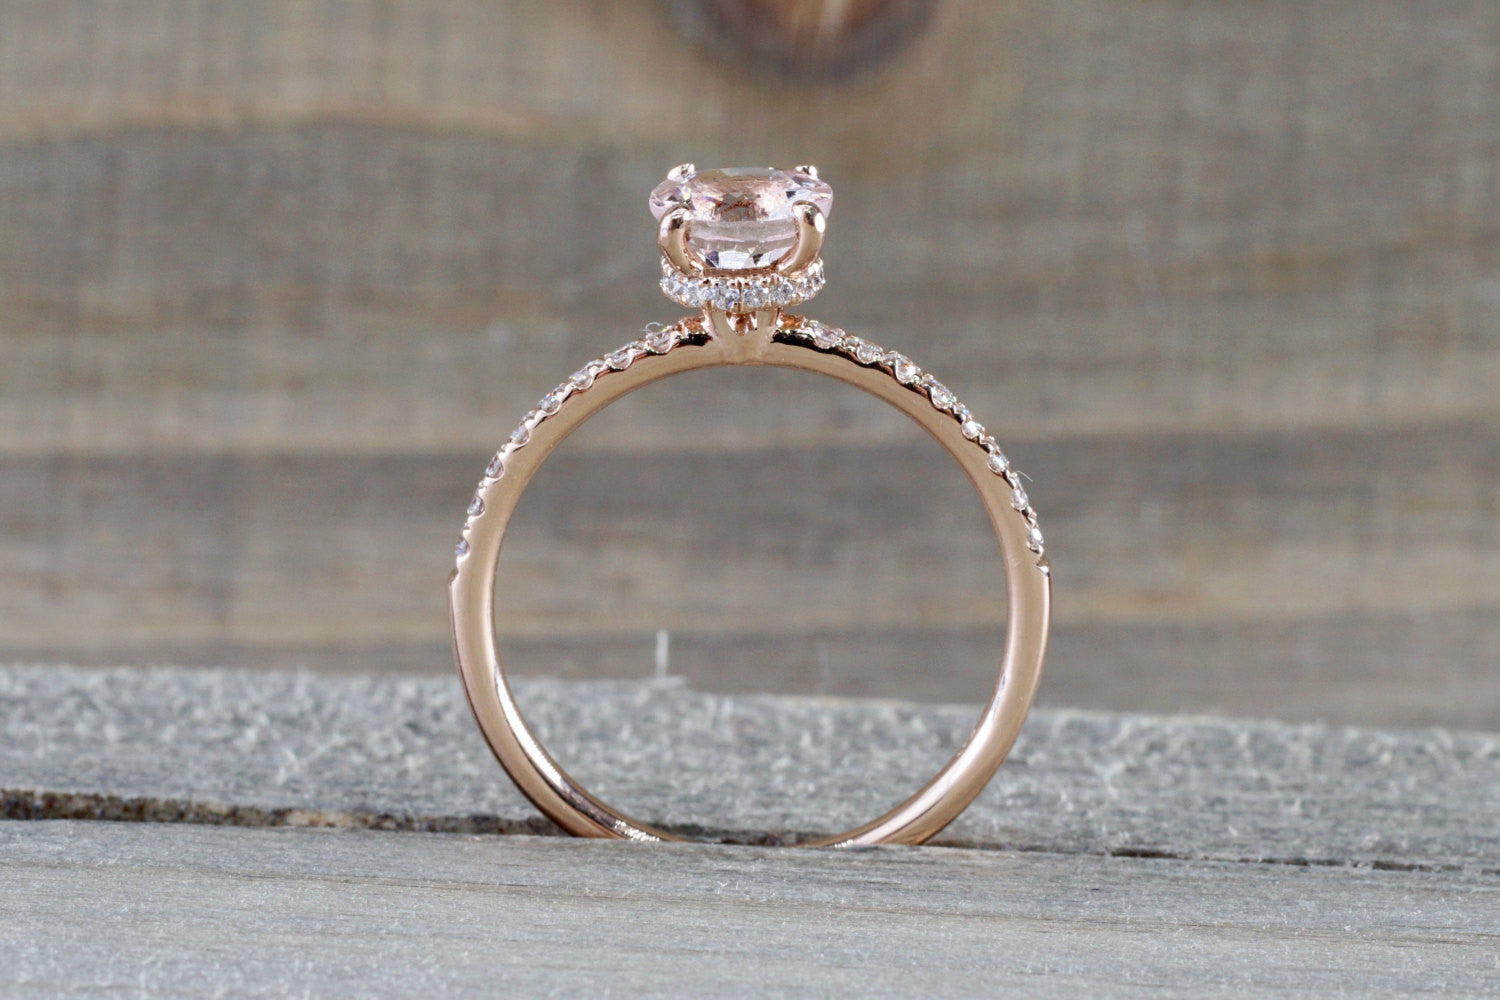 14k Rose Gold Dainty Round Morganite With Round Cut Diamonds Ring - Brilliant Facets